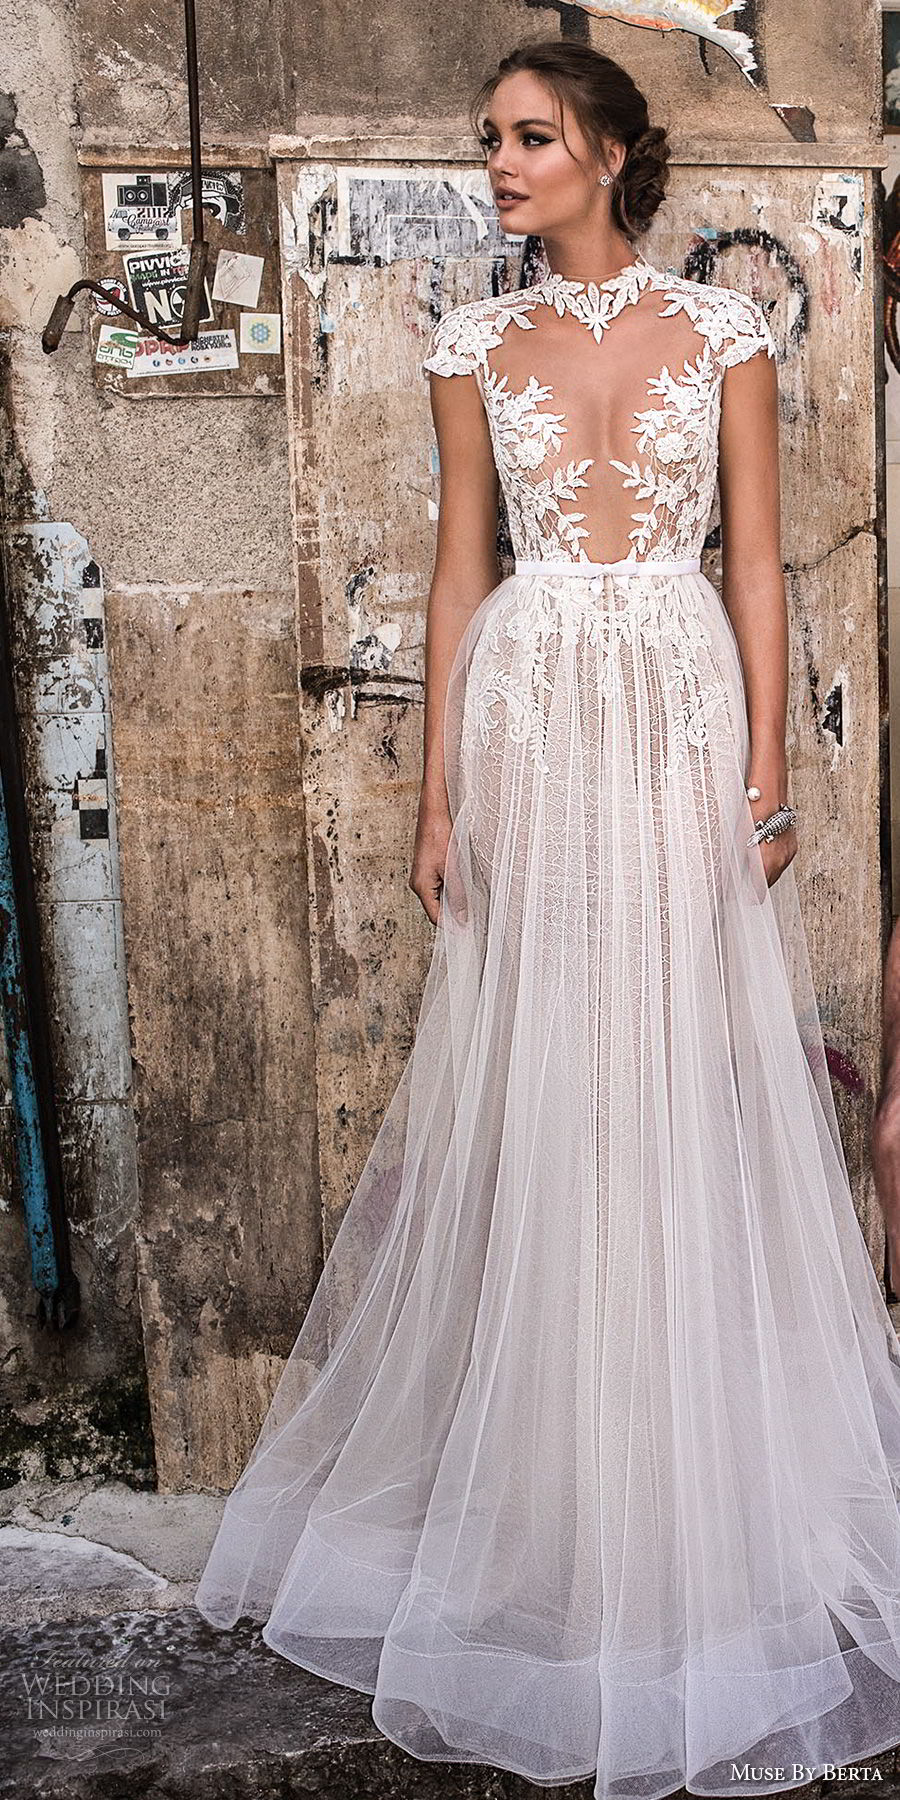 muse-berta-2018-bridal-cap-sleeves-high-neck-deep-plunging-sweetheart-neckline-heavily-embellished-bodice-tulle-skirt-sexy-romantic-a-line-wedding-dress-keyhole-back (1)